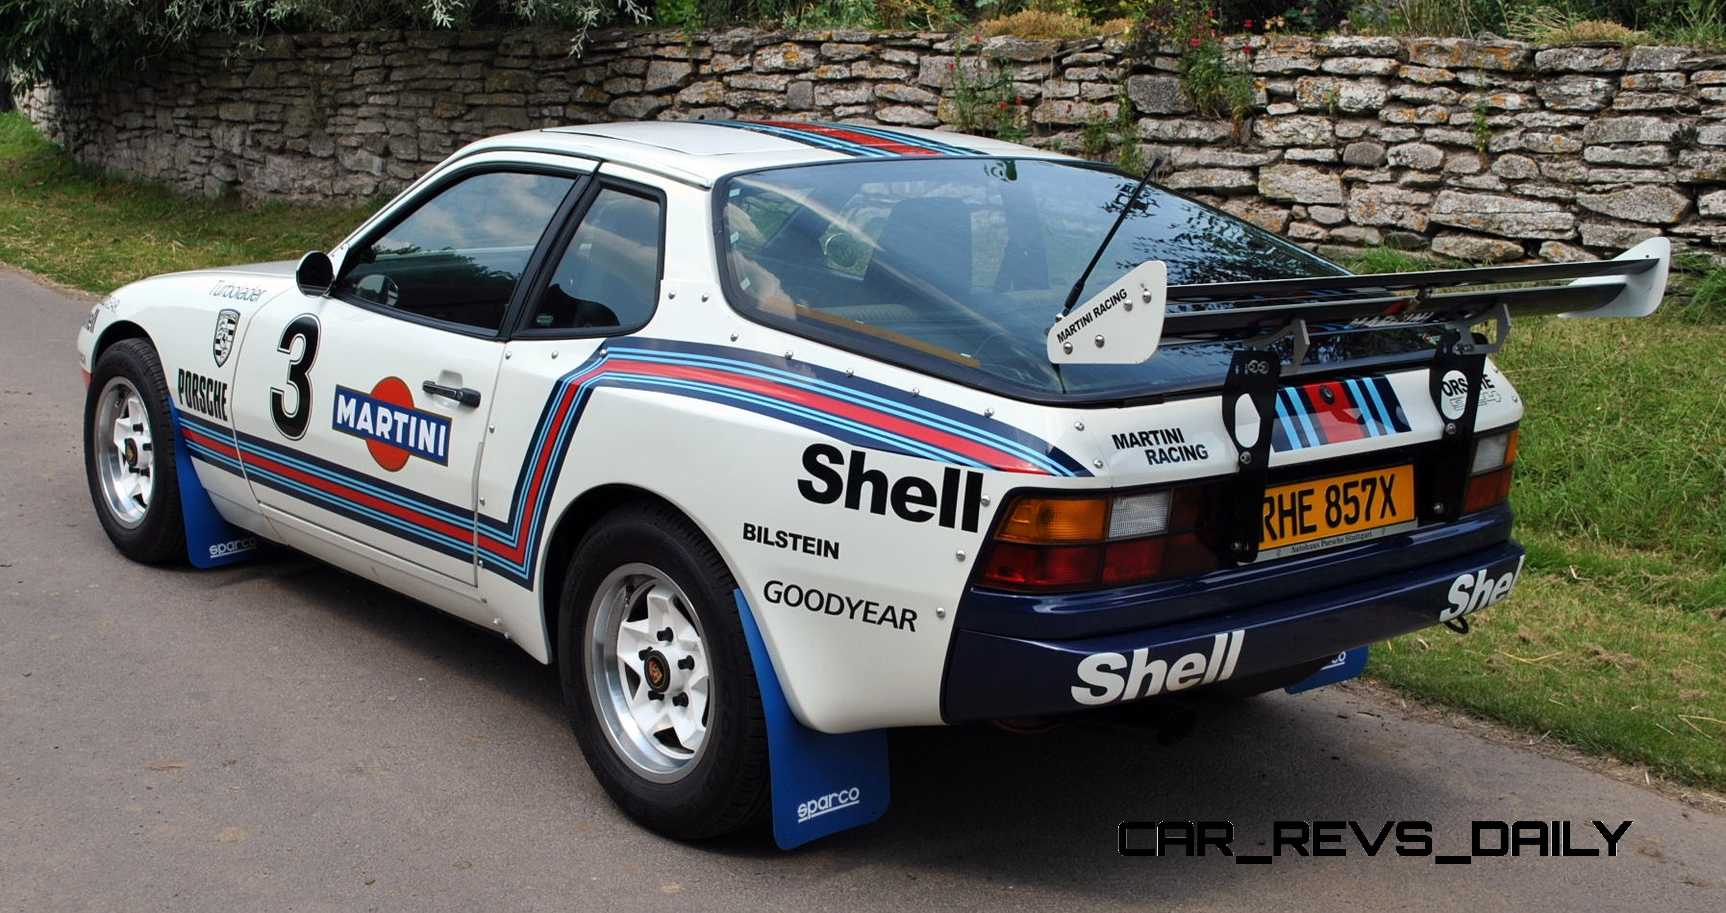 Win A Car Sweepstakes >> Pristine Porsche 924 Martini Rally Car Up For Grabs In New ...